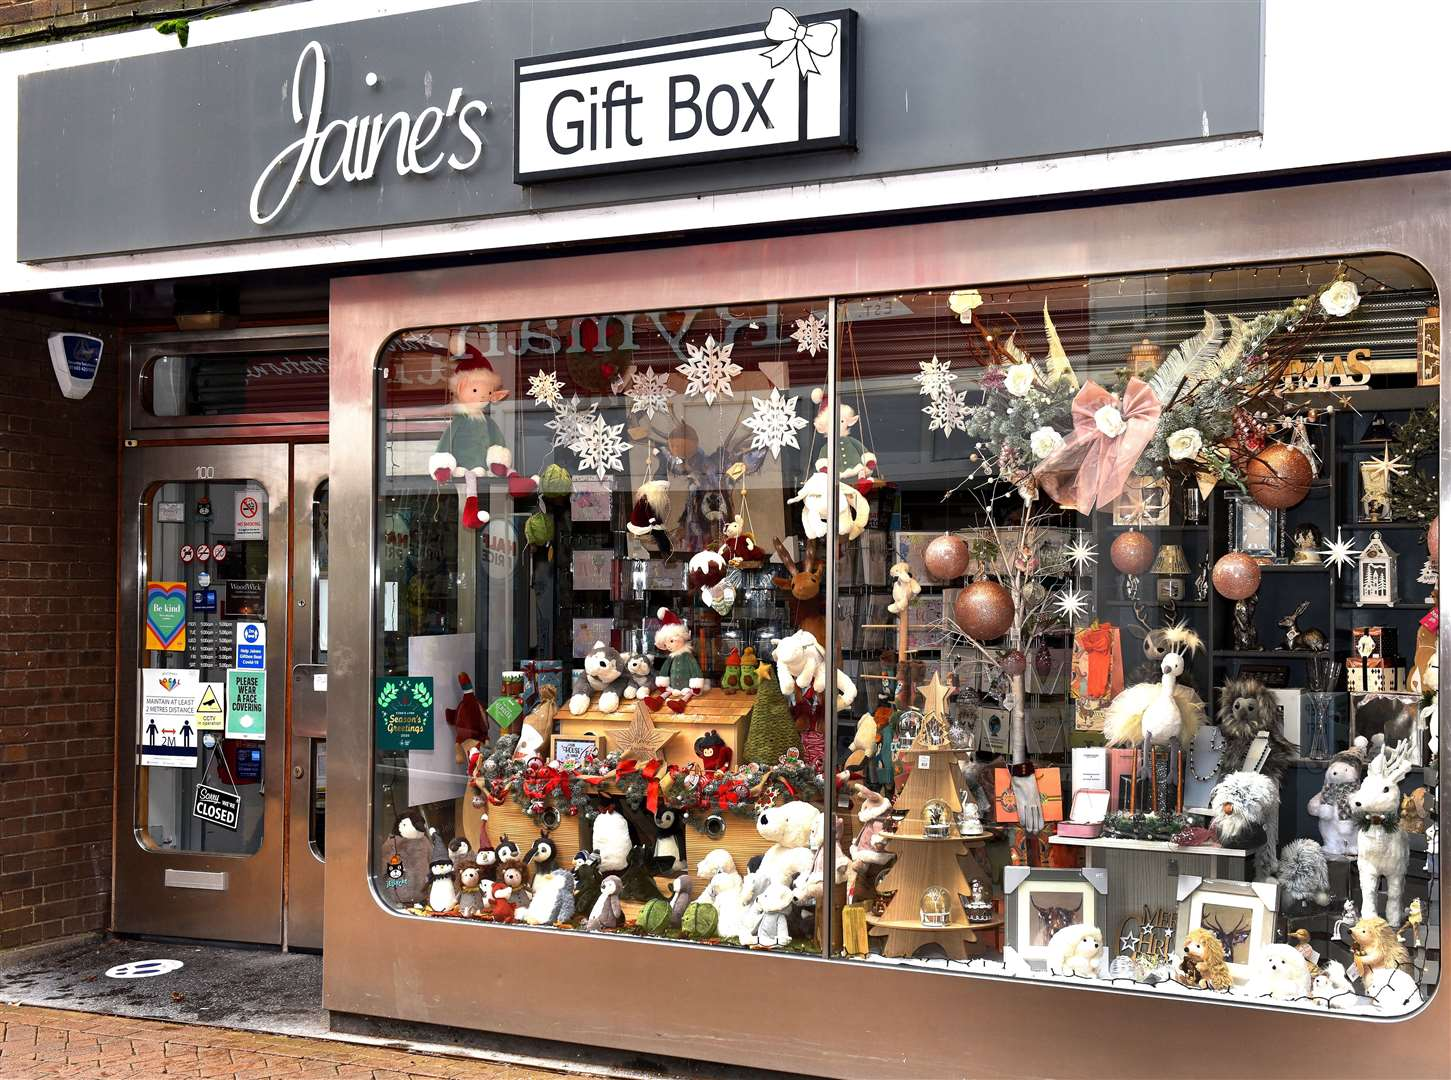 Jaine's Gift Box won the Christmas Window Competition with this display captured by photographer Paul Marsh